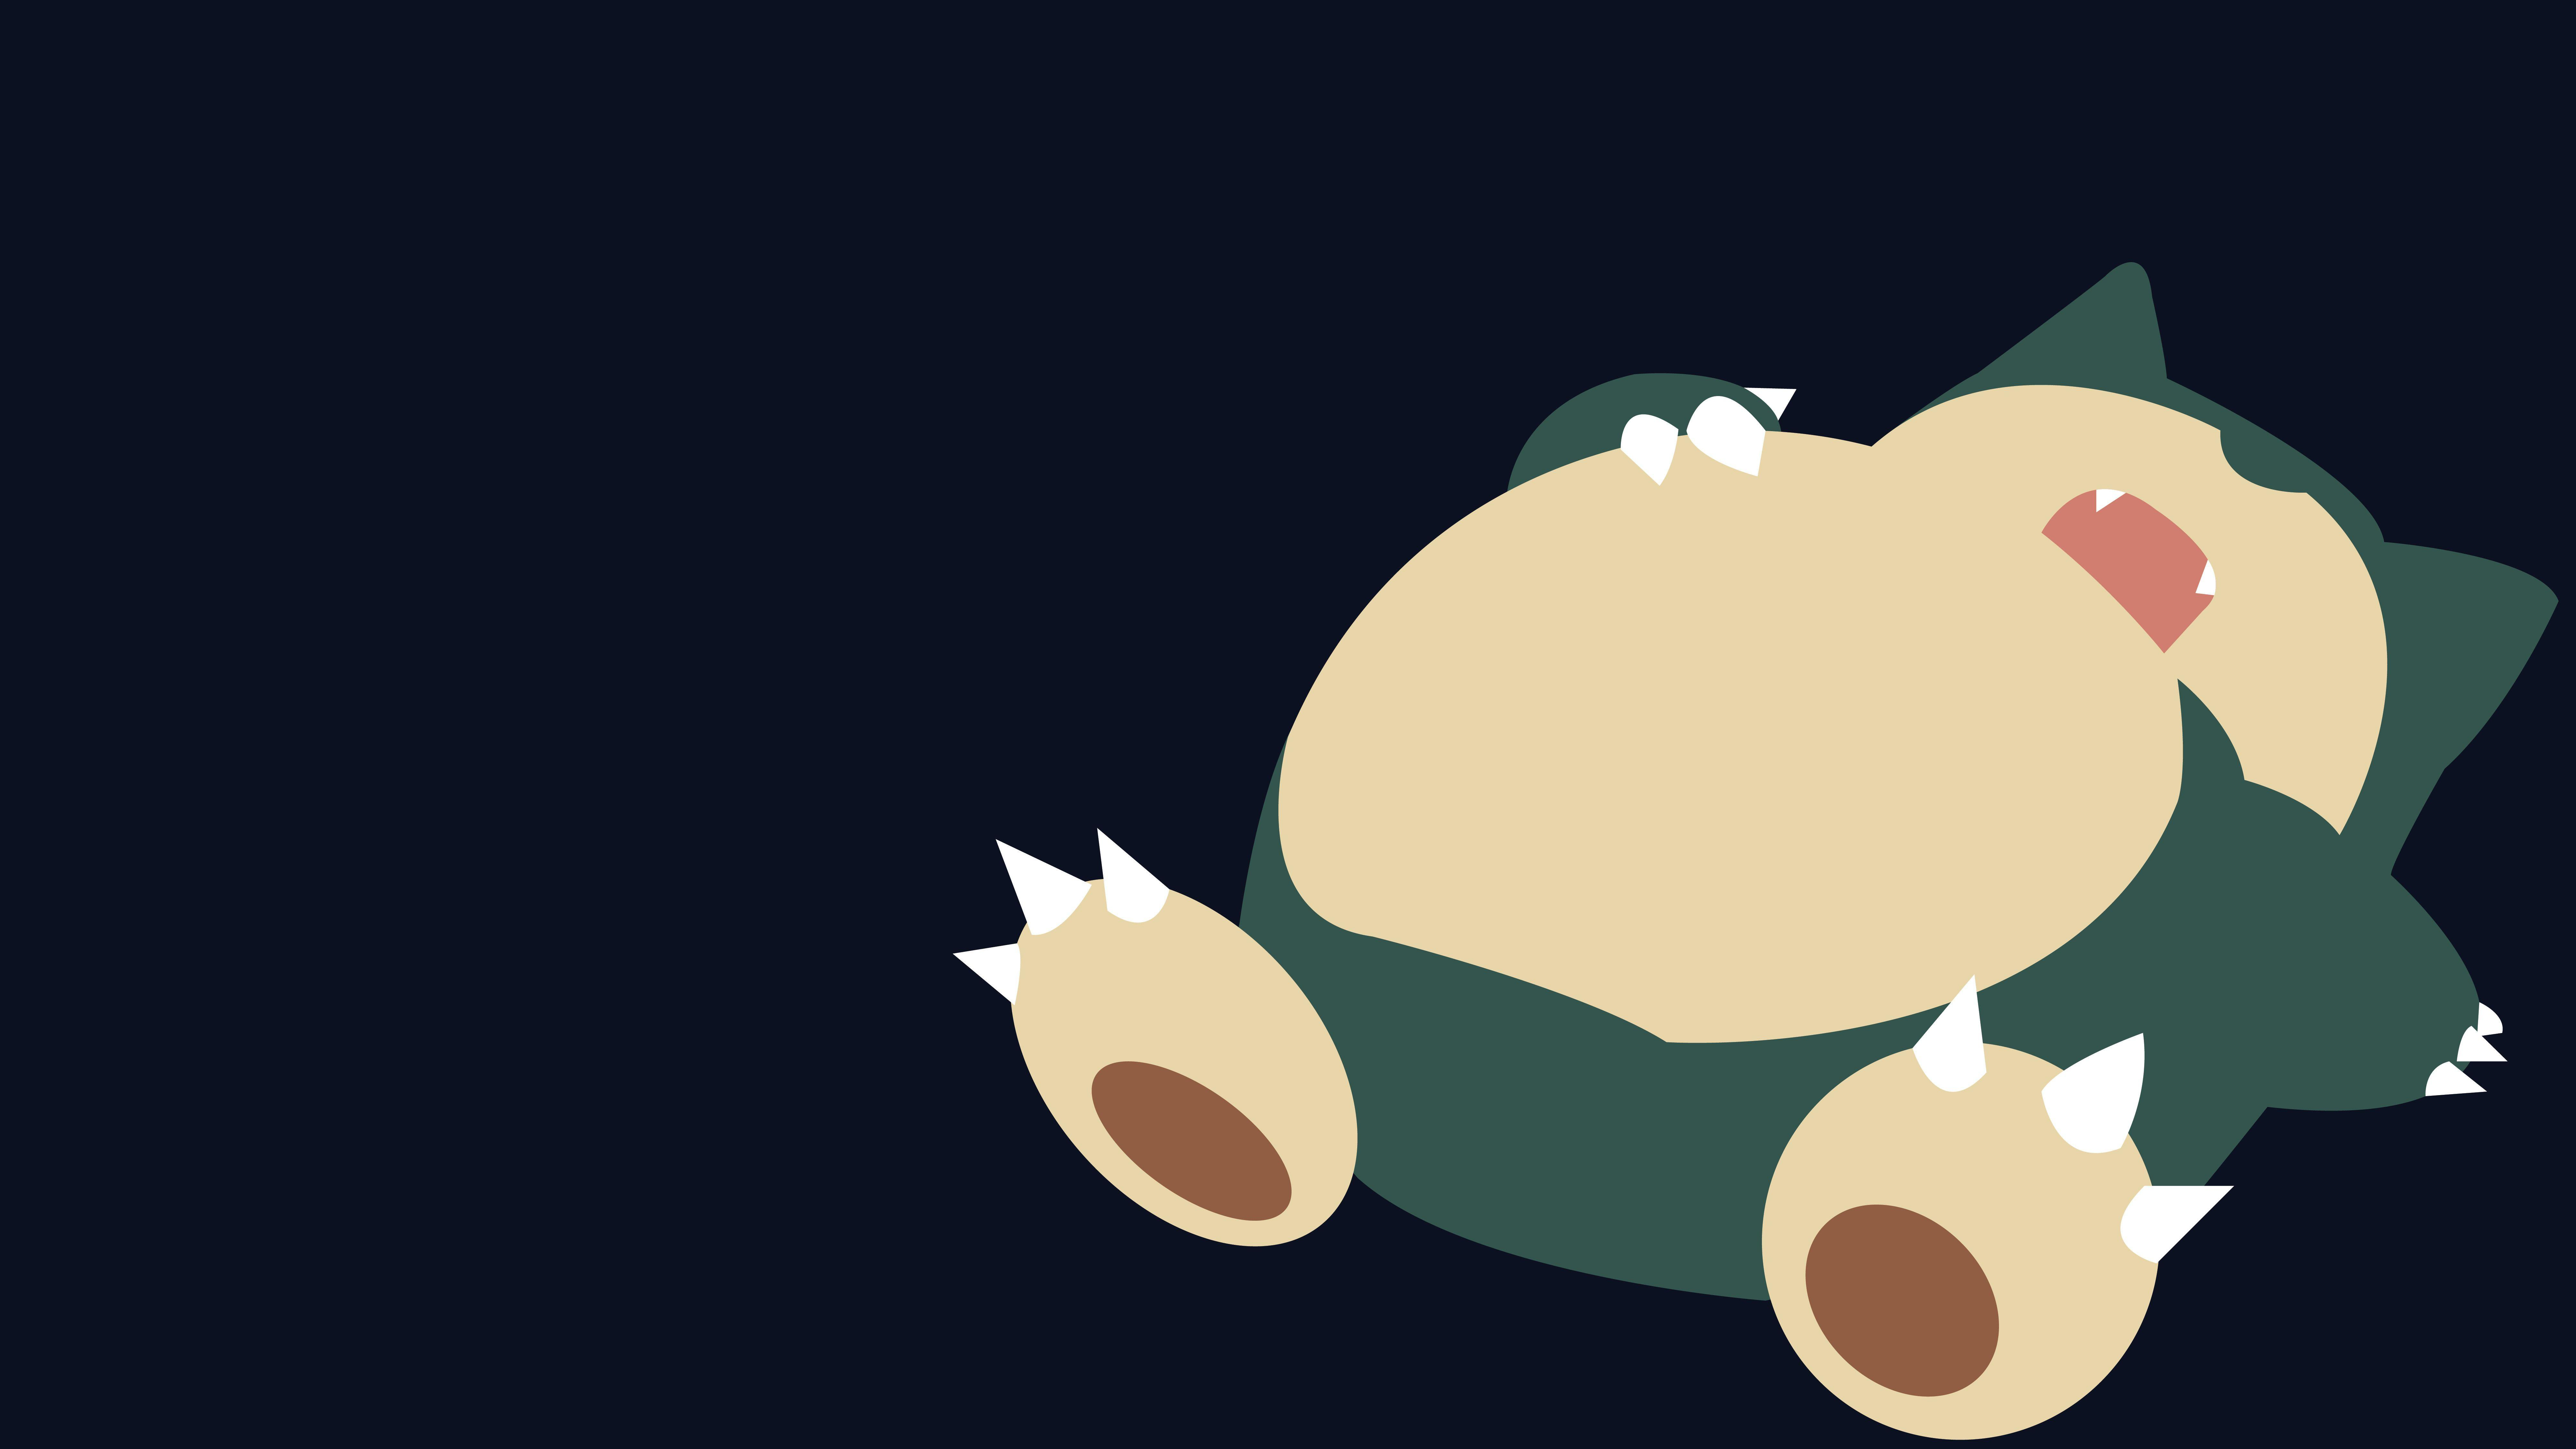 Cute Dragonite Wallpaper Snorlax Hd Wallpapers Wallpaper Cave